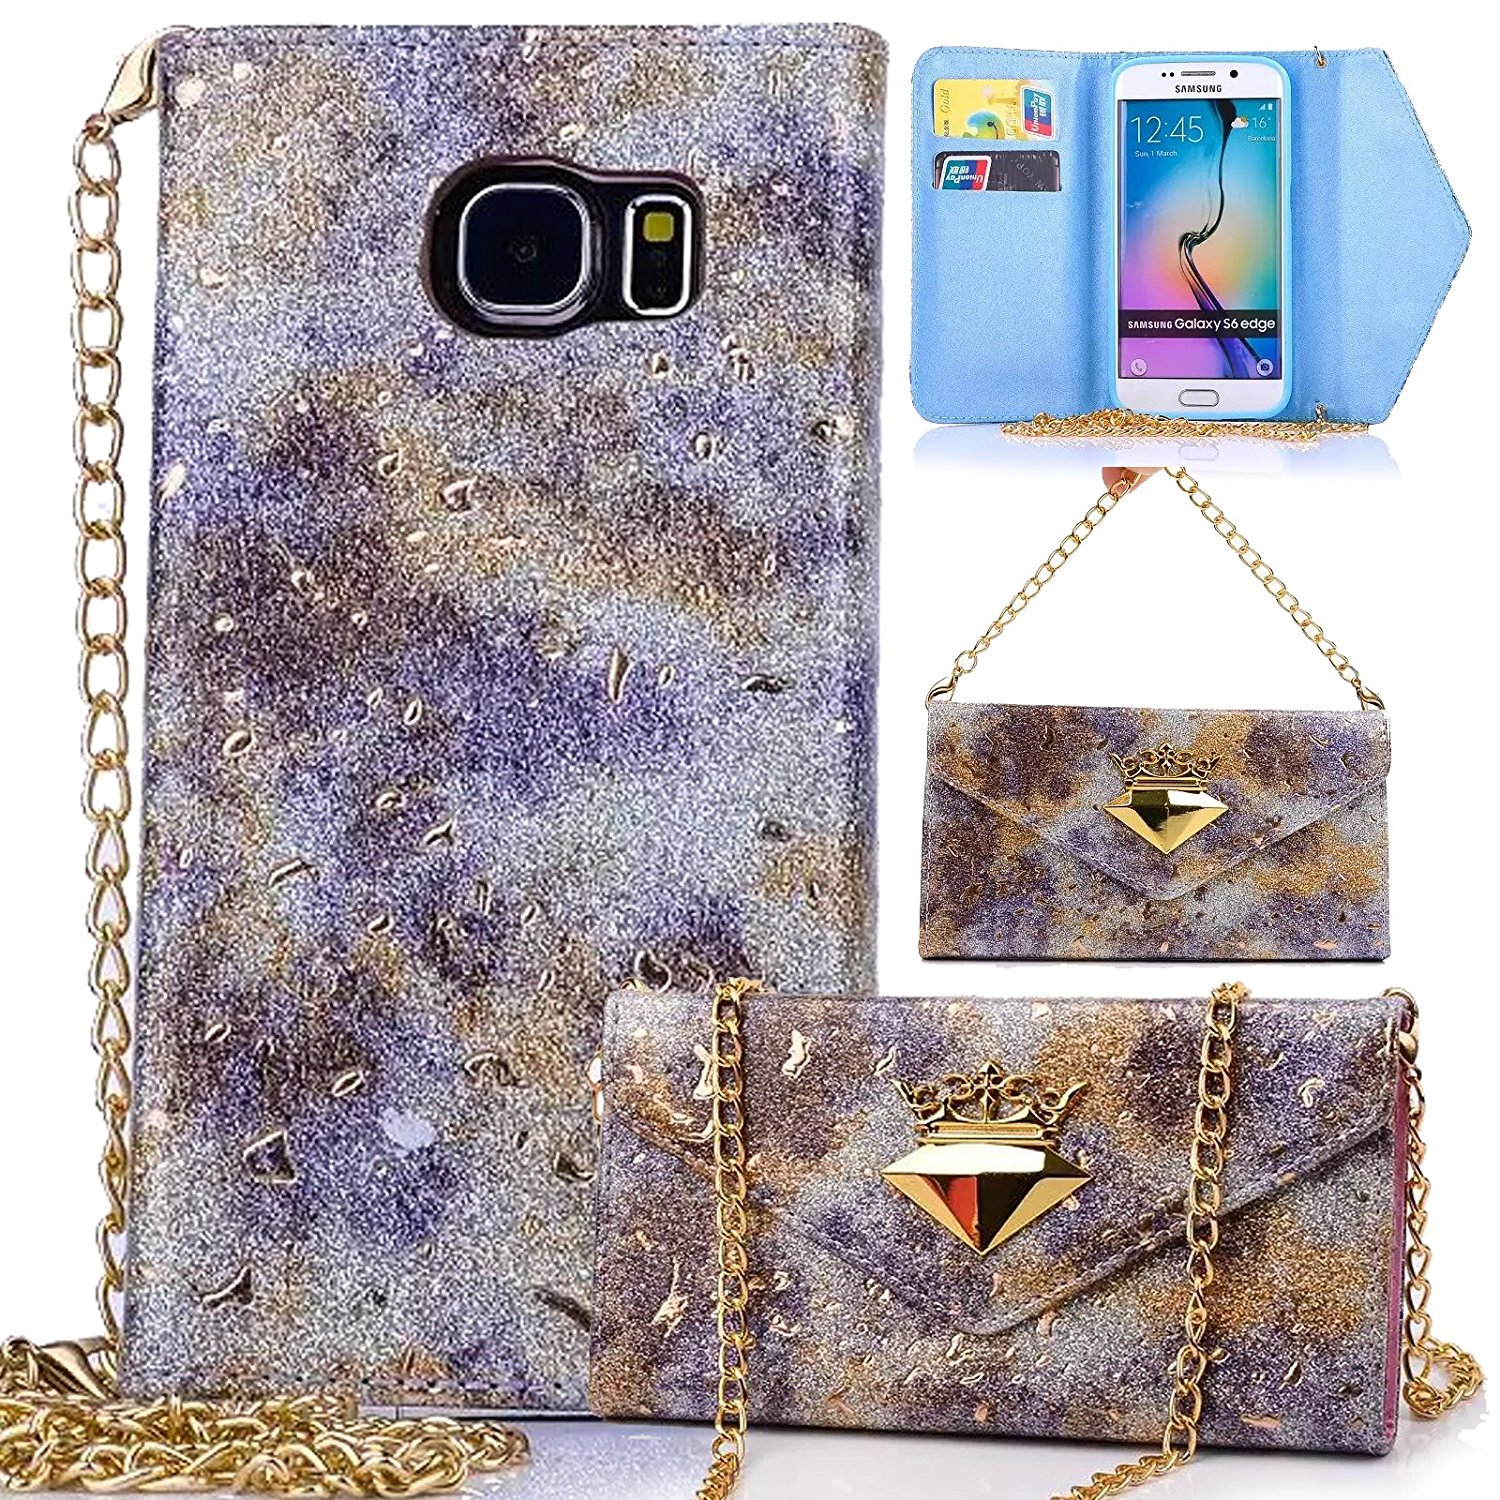 Galaxy S6 Edge Case, Dteck(TM) Luxury Crown Jewel Design Sparkle Decorate Bling Stars PU Leather Case [Card Slots & Chain Strap] [Shoulder Bag Style] Case Cover for Samsung Galaxy S6 Edge (4 Purple)